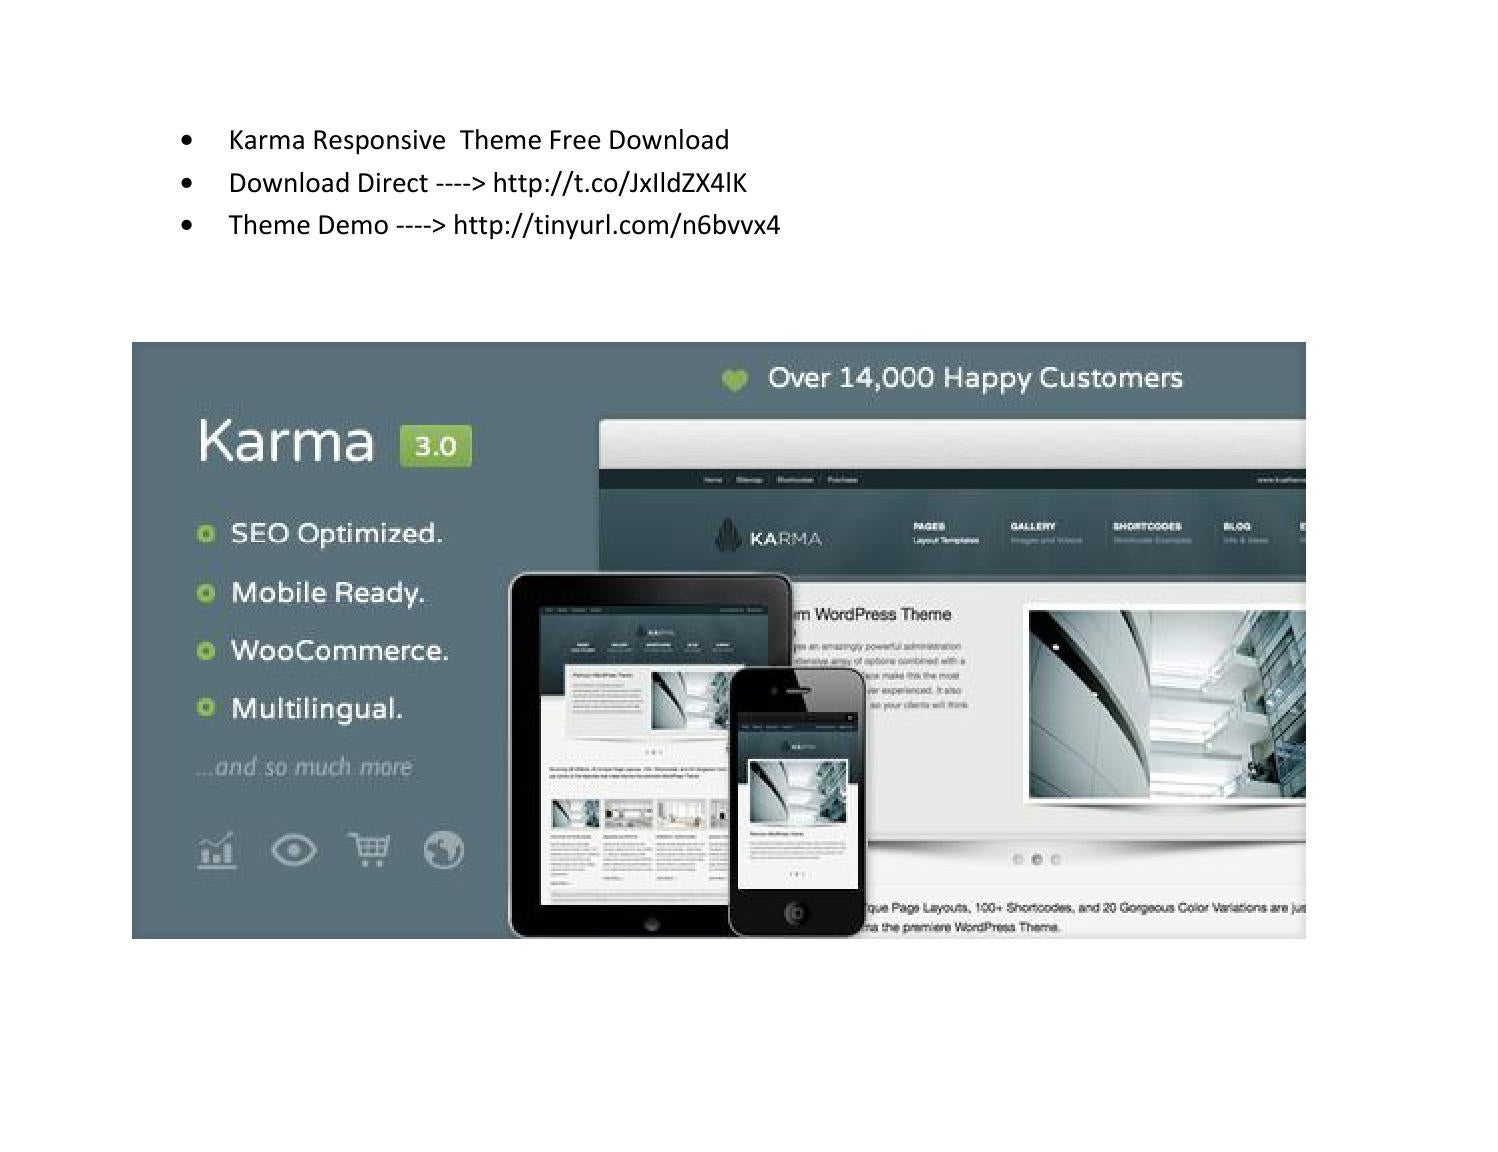 Karma responsive theme free download by alixa nomi - issuu